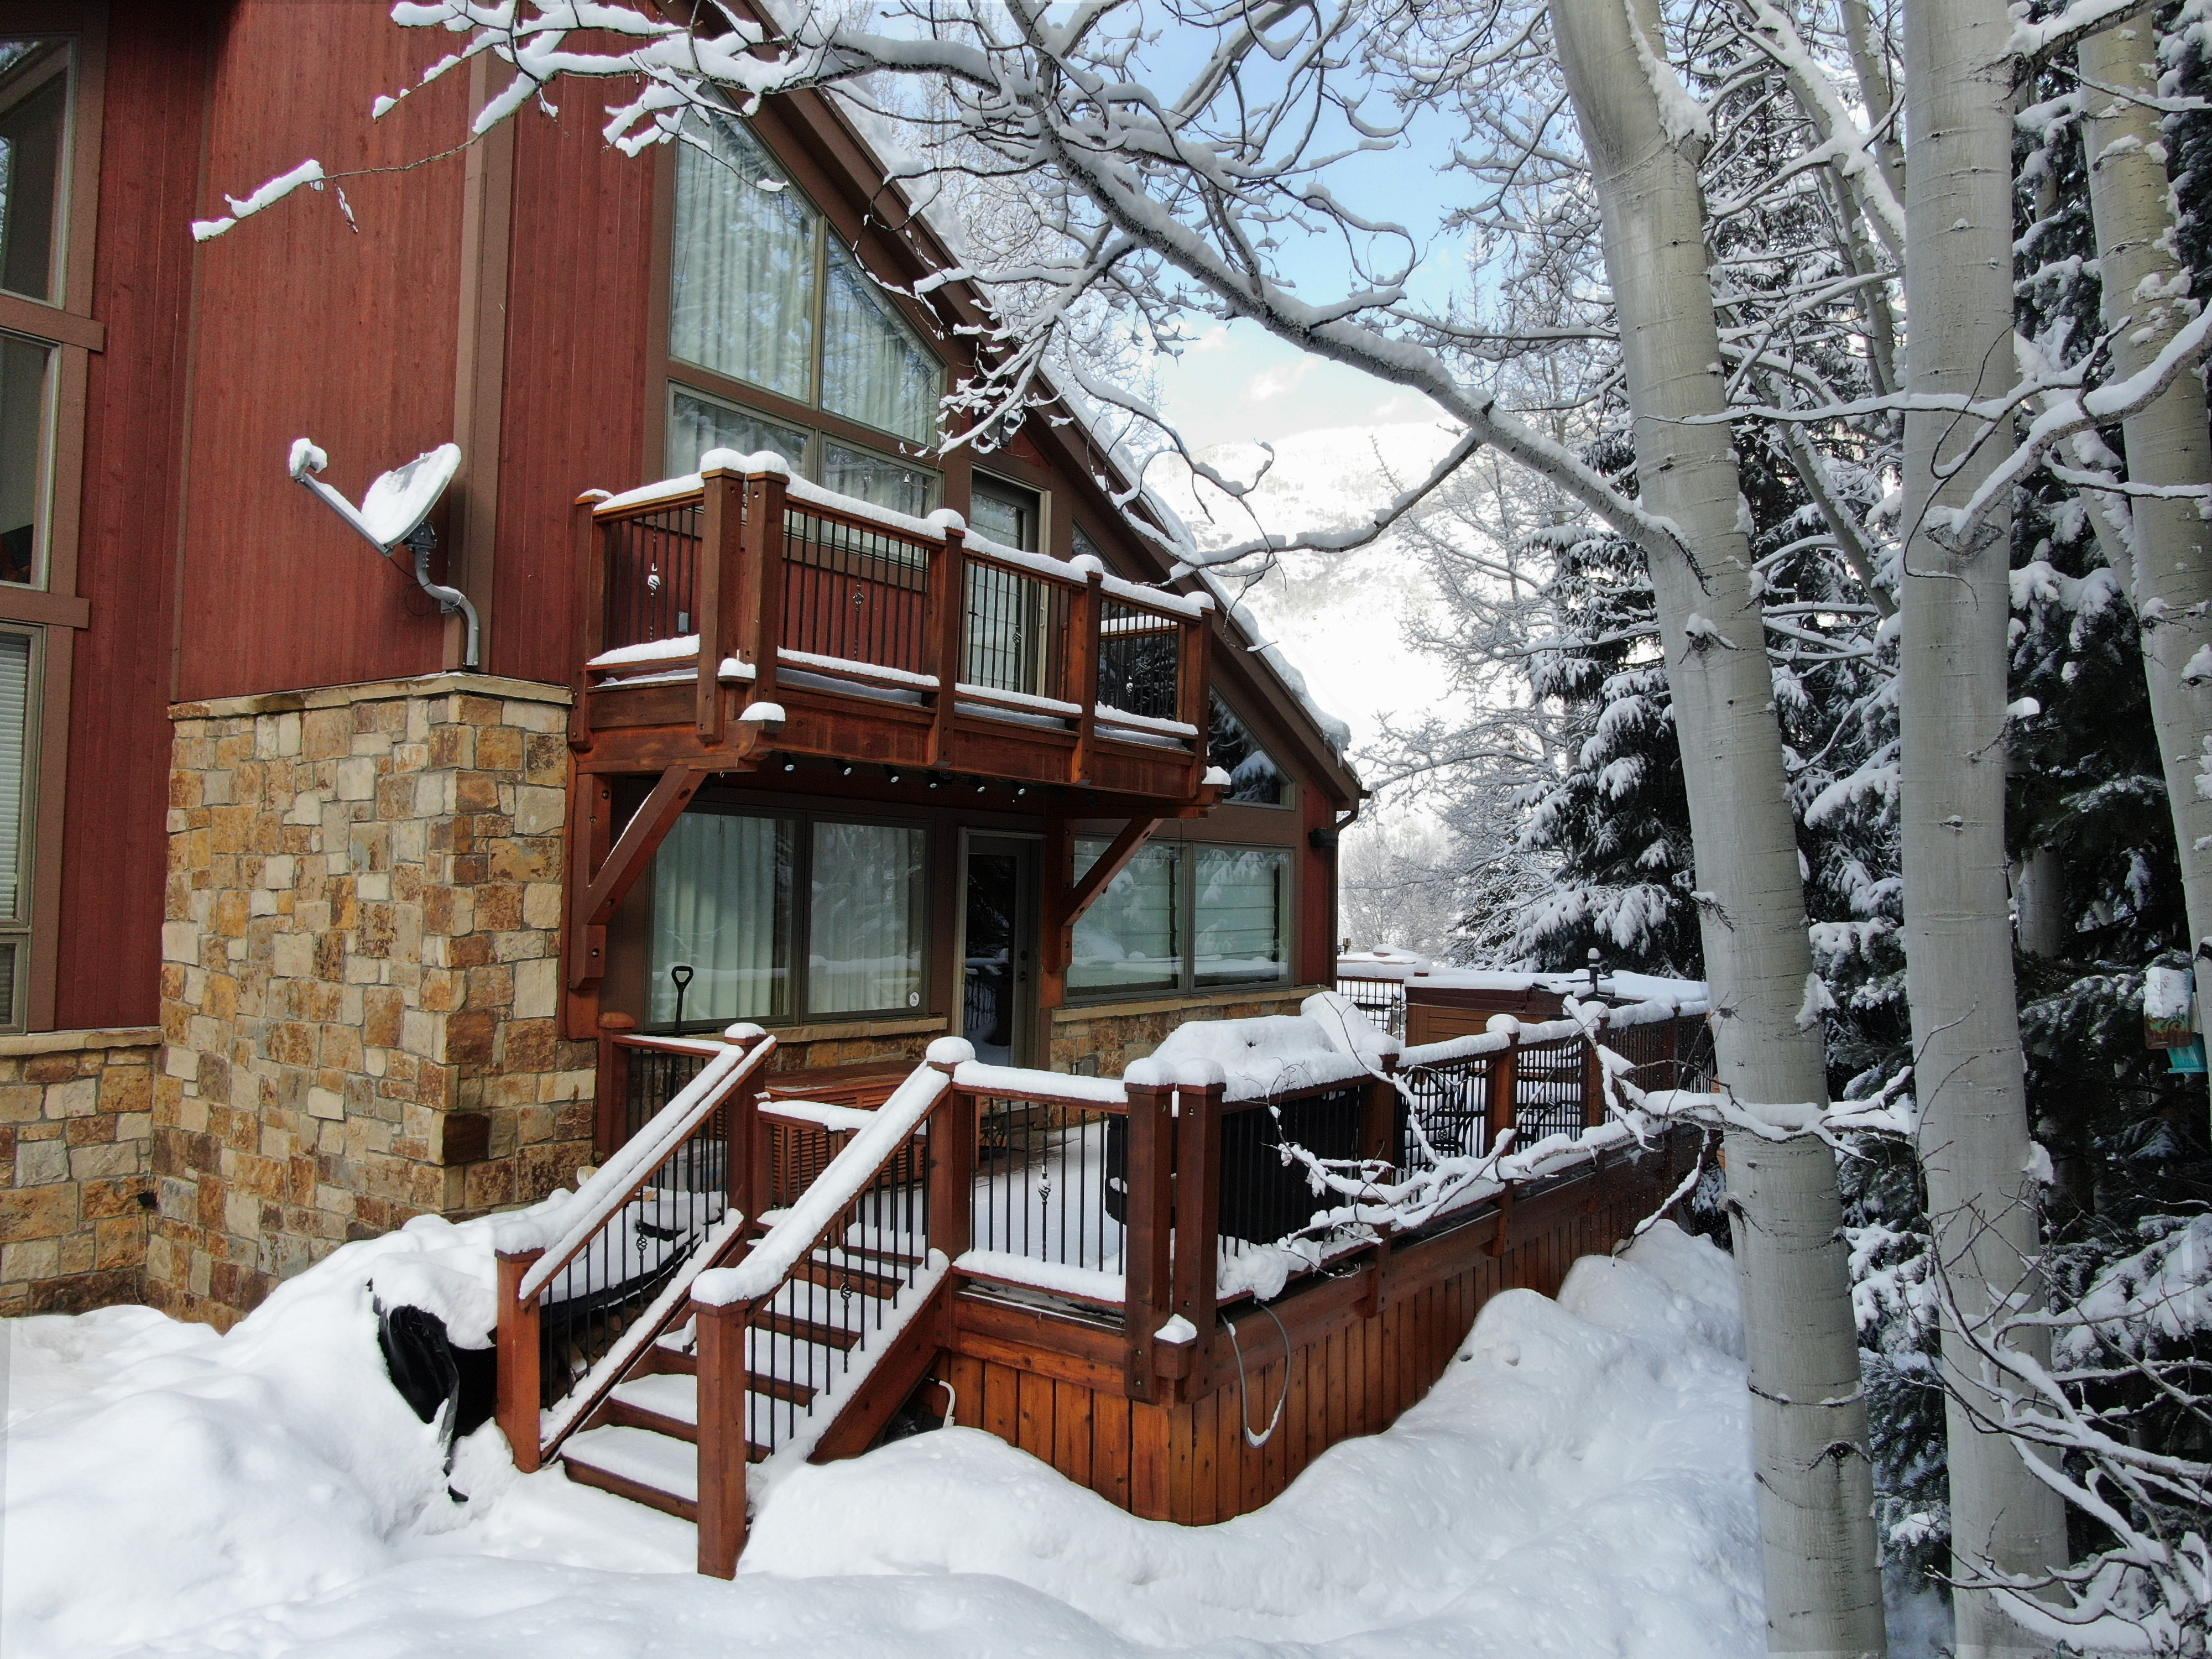 Property Image 2 - Tree-Nestled Ski Chalet with Close Transportation Access